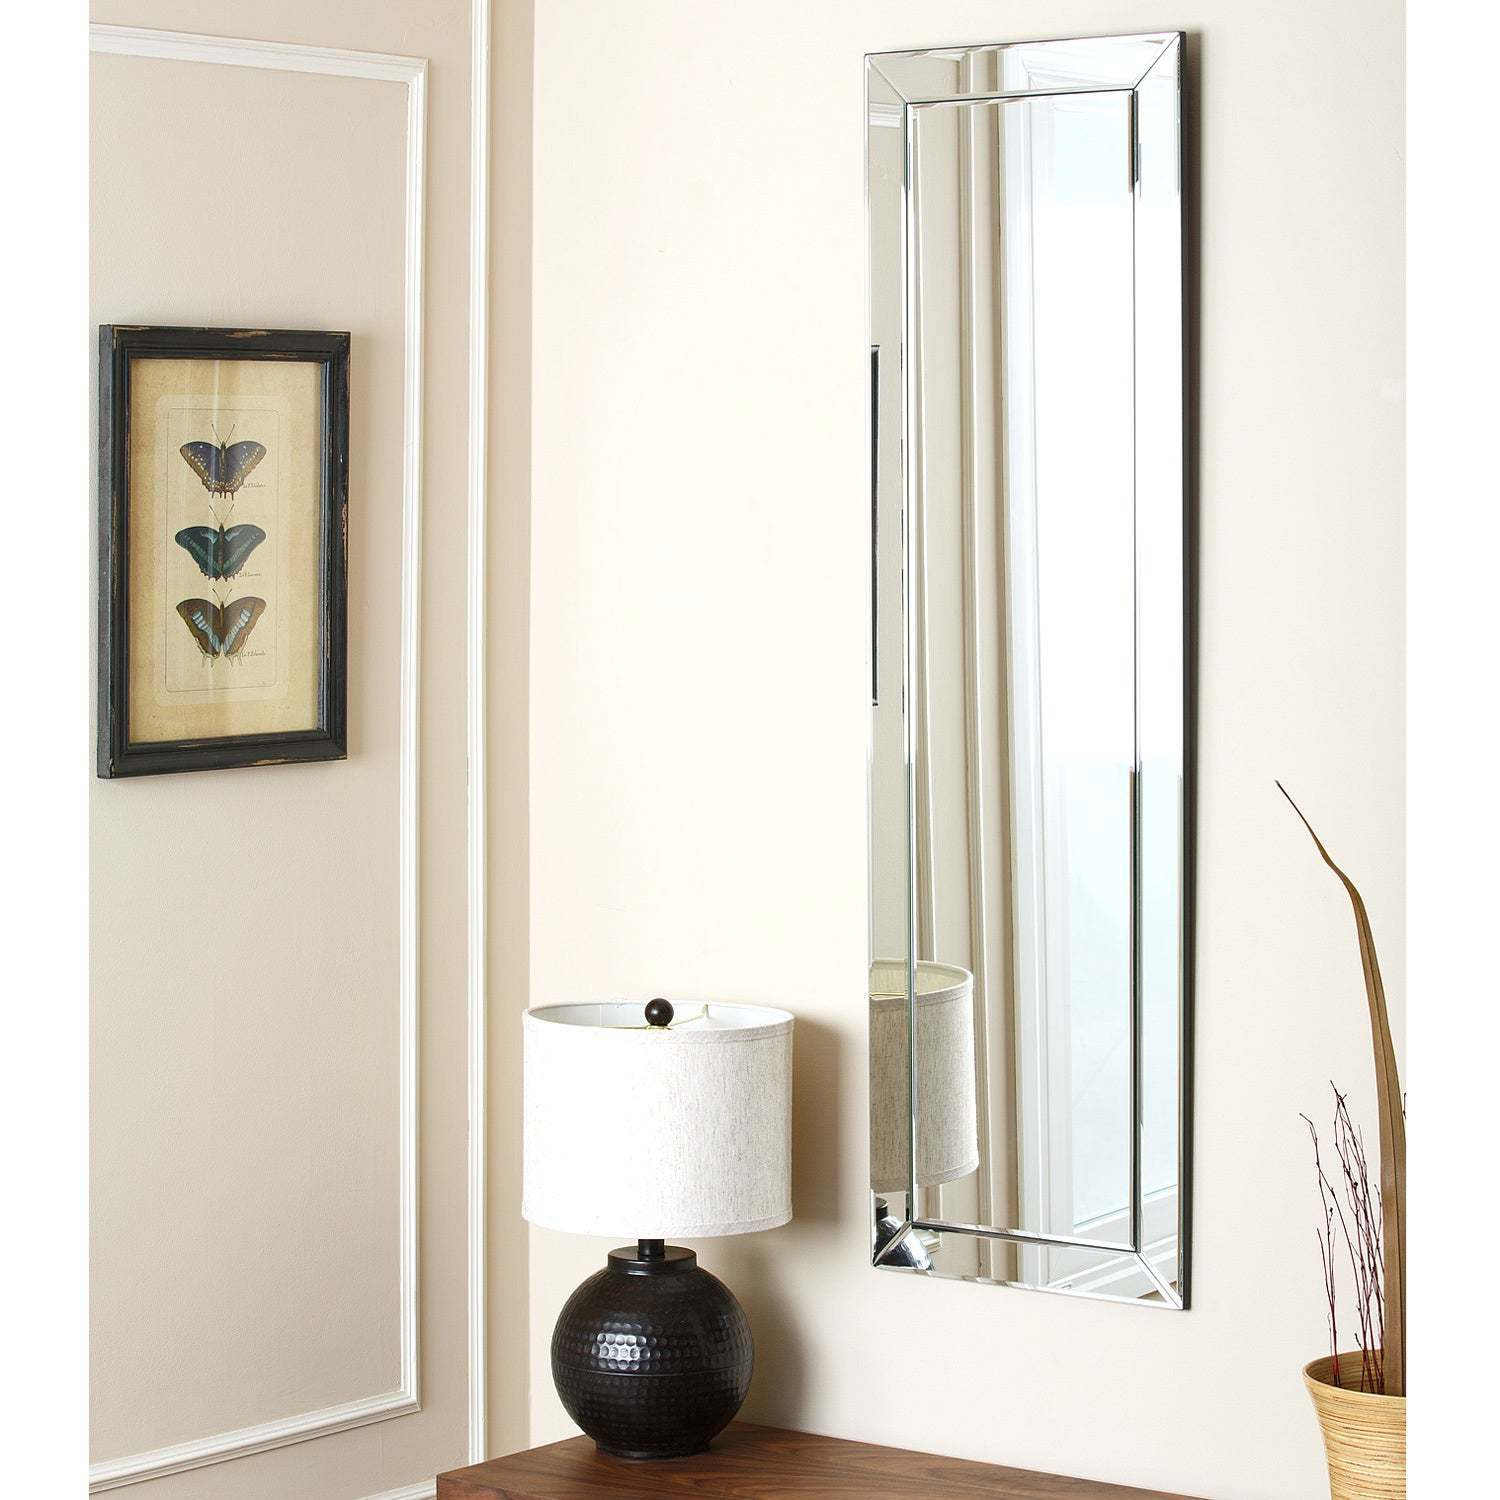 Pennsburg Rectangle Wall Mirror For Most Recently Released Buy Rectangular, Wall Mirror Mirrors Online At Overstock (View 9 of 20)